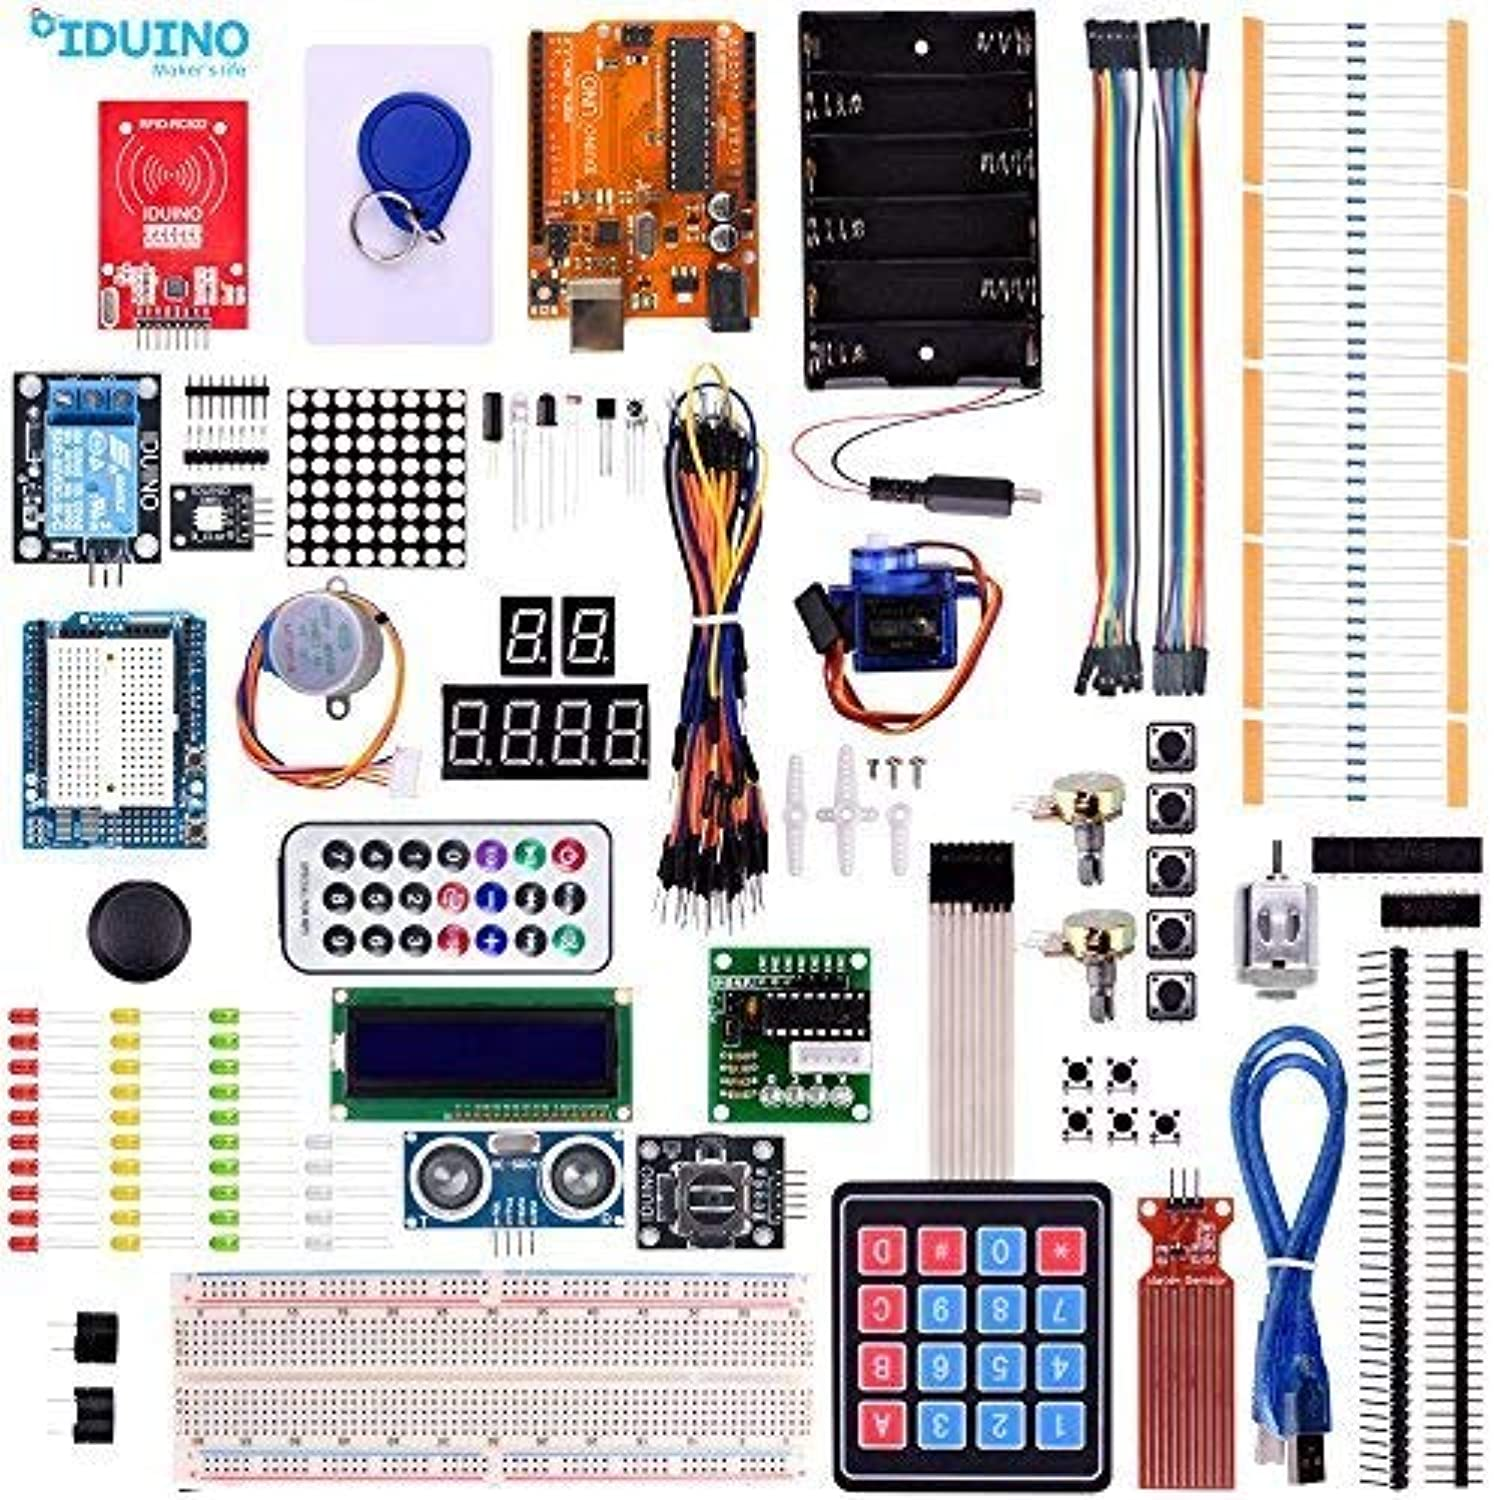 Iduino Projects Kit for Arduino Uno Program Learning Electronics Starter Kit,Designed for Teens Beginner Advanced Make DIY Robotics with Uno R3 33 Lessons Tutorial with Sample Sketches